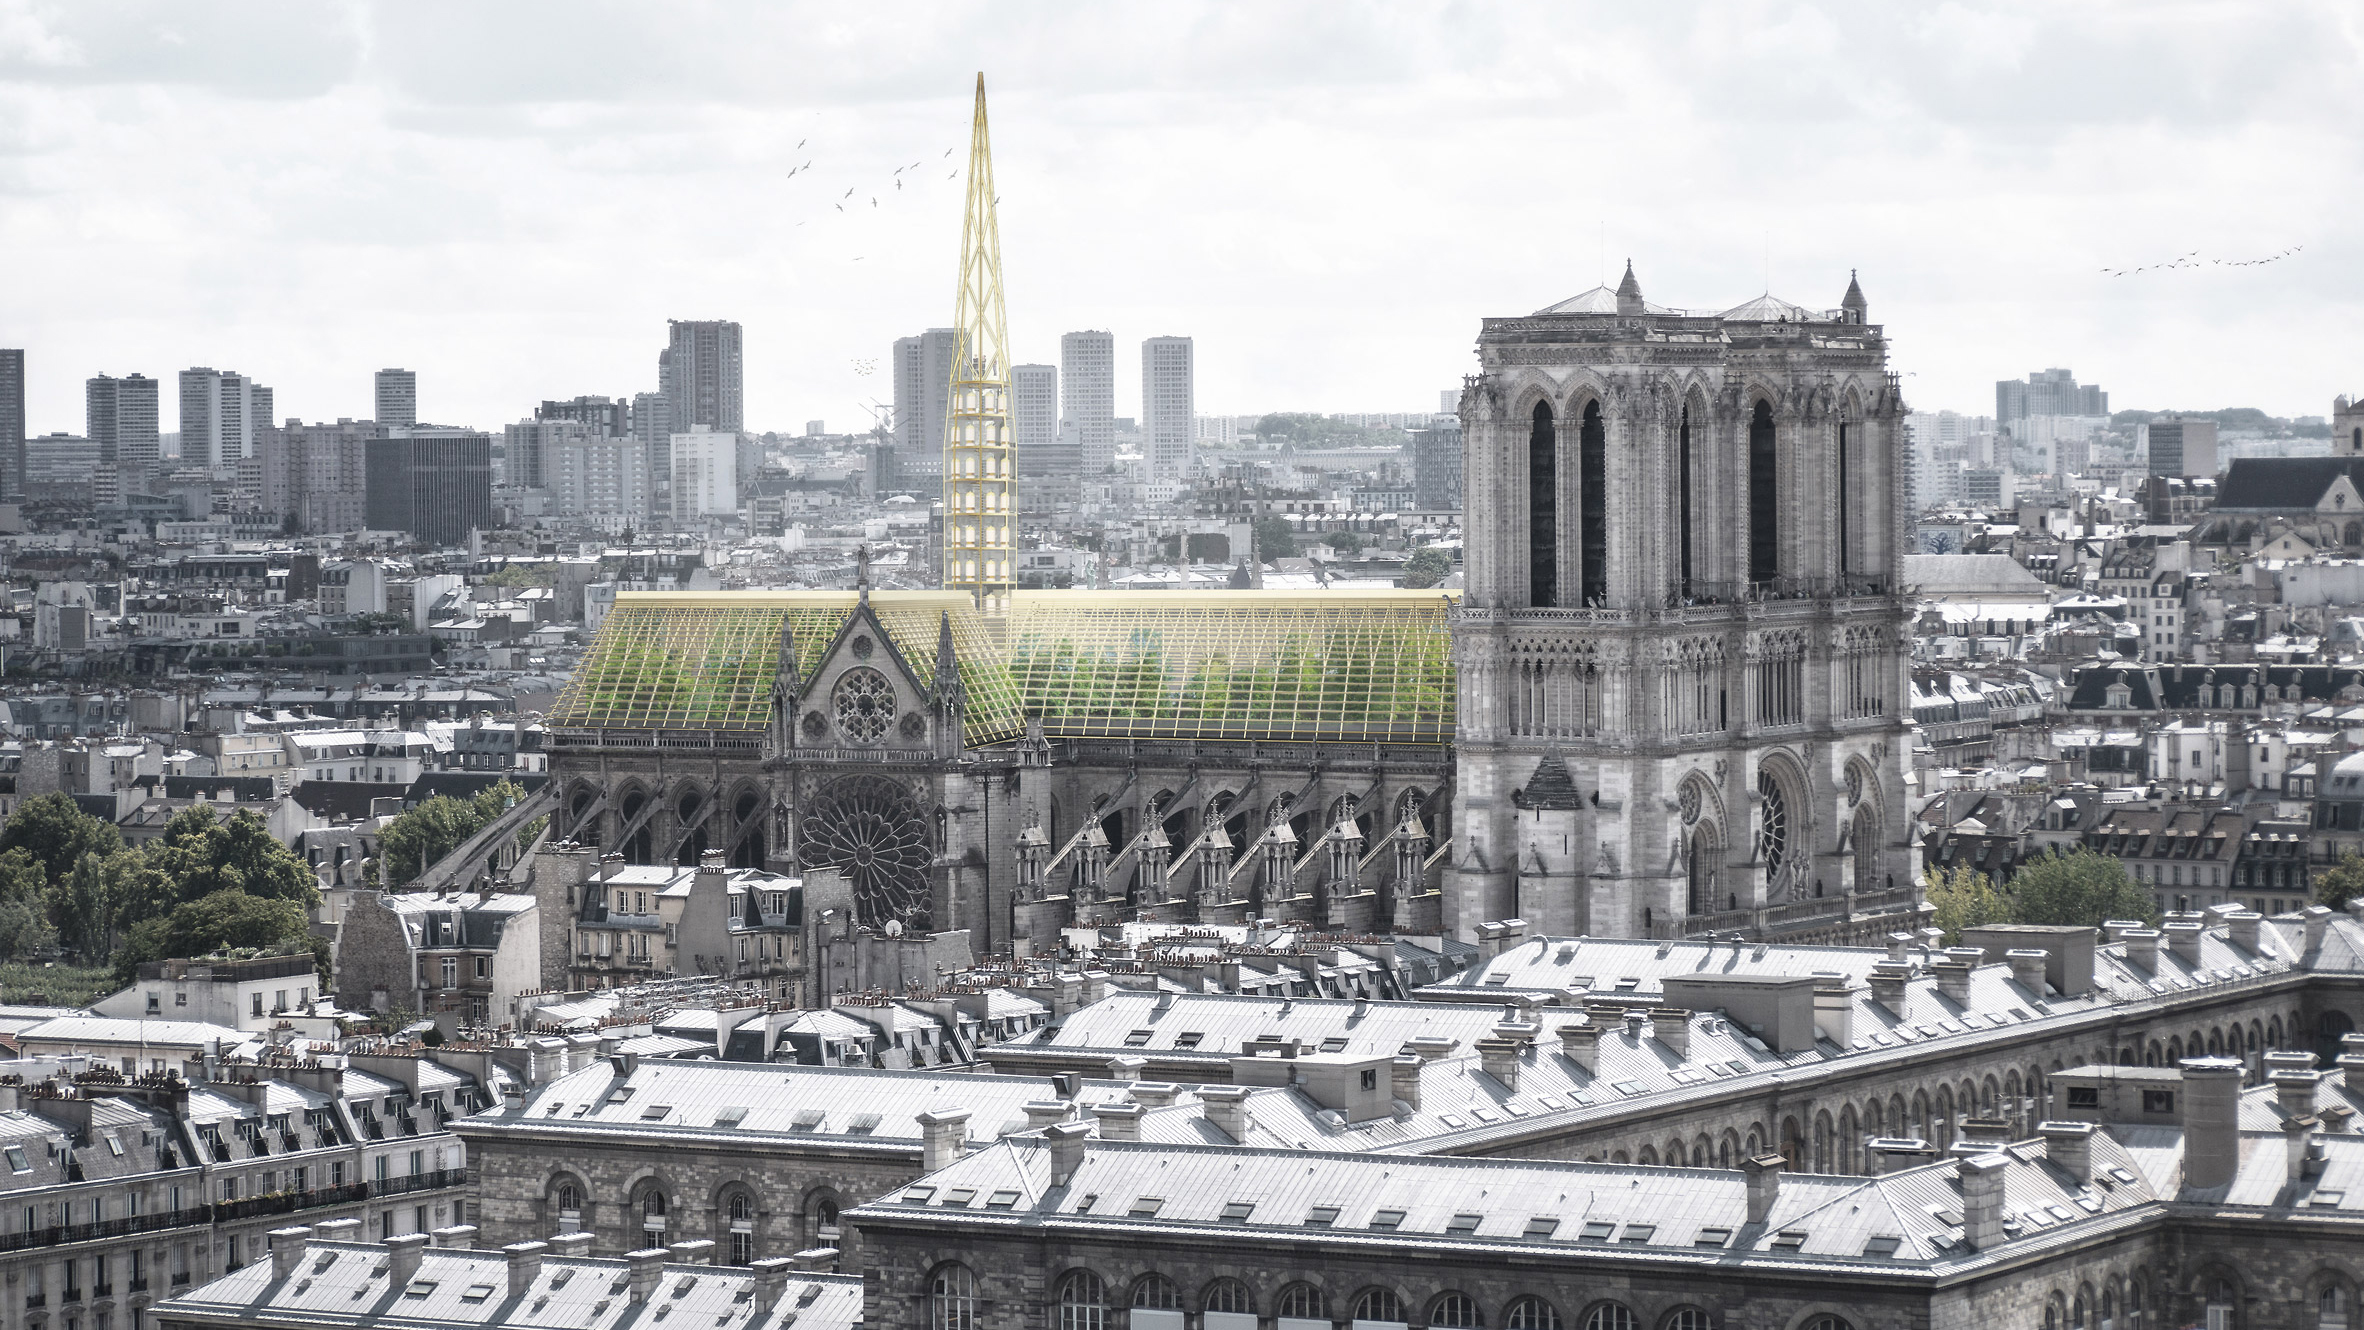 Nab Studio Proposes Turning Notre Dame Roof Into Public Greenhouse